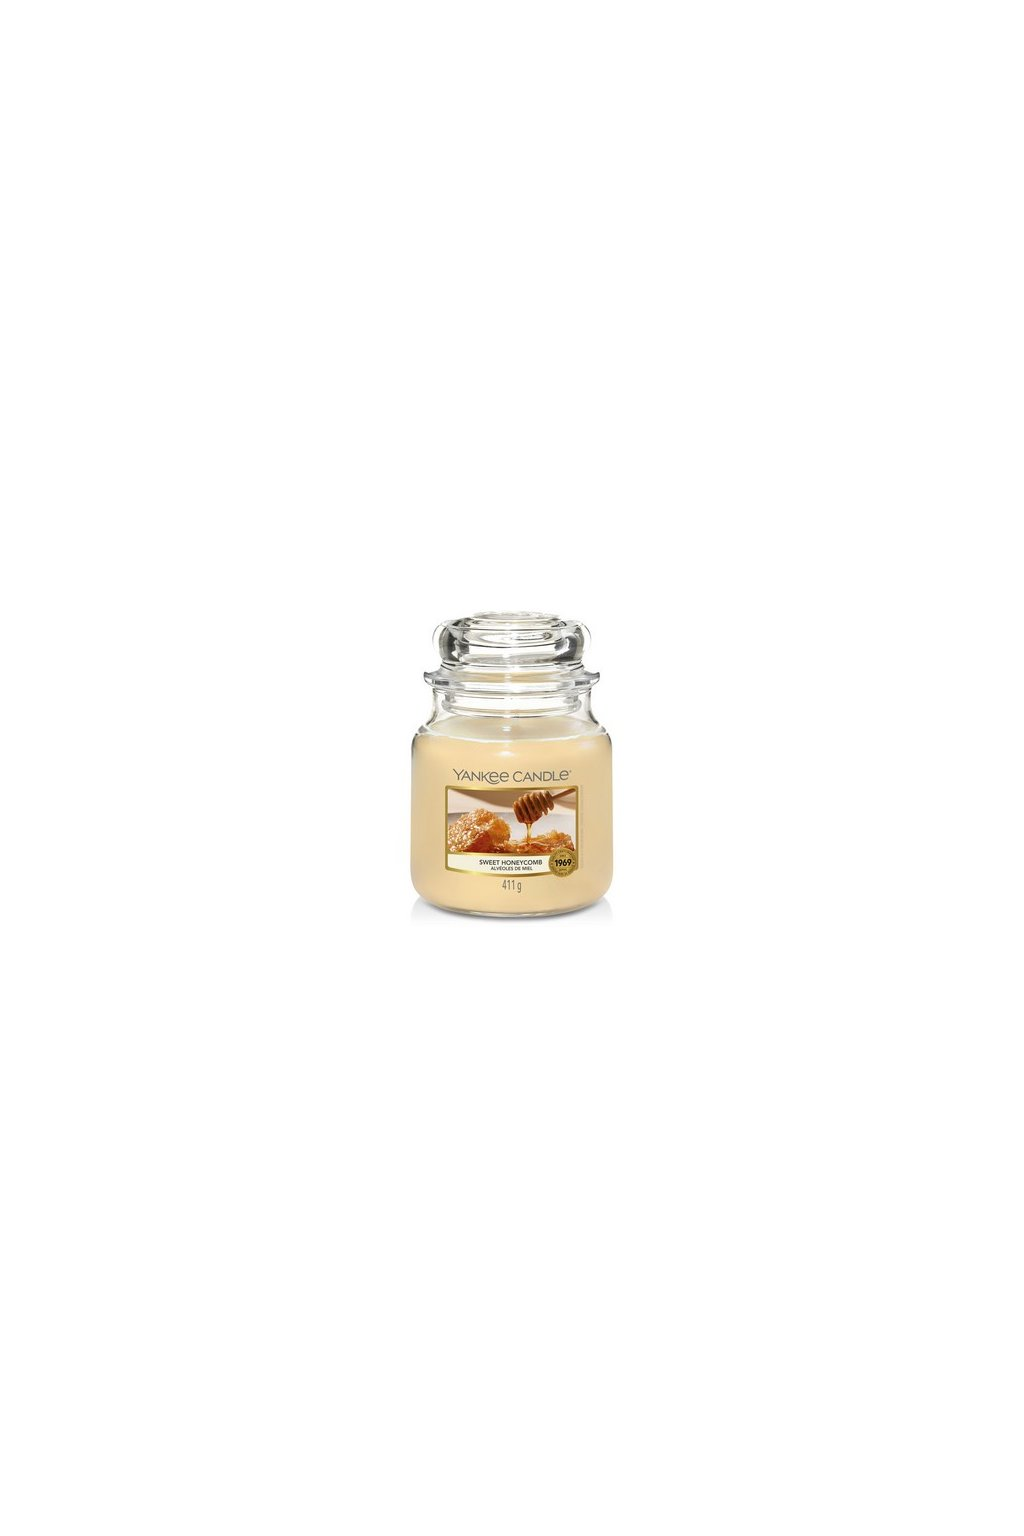 YANKEE CANDLE Sweet Honeycomb 411g